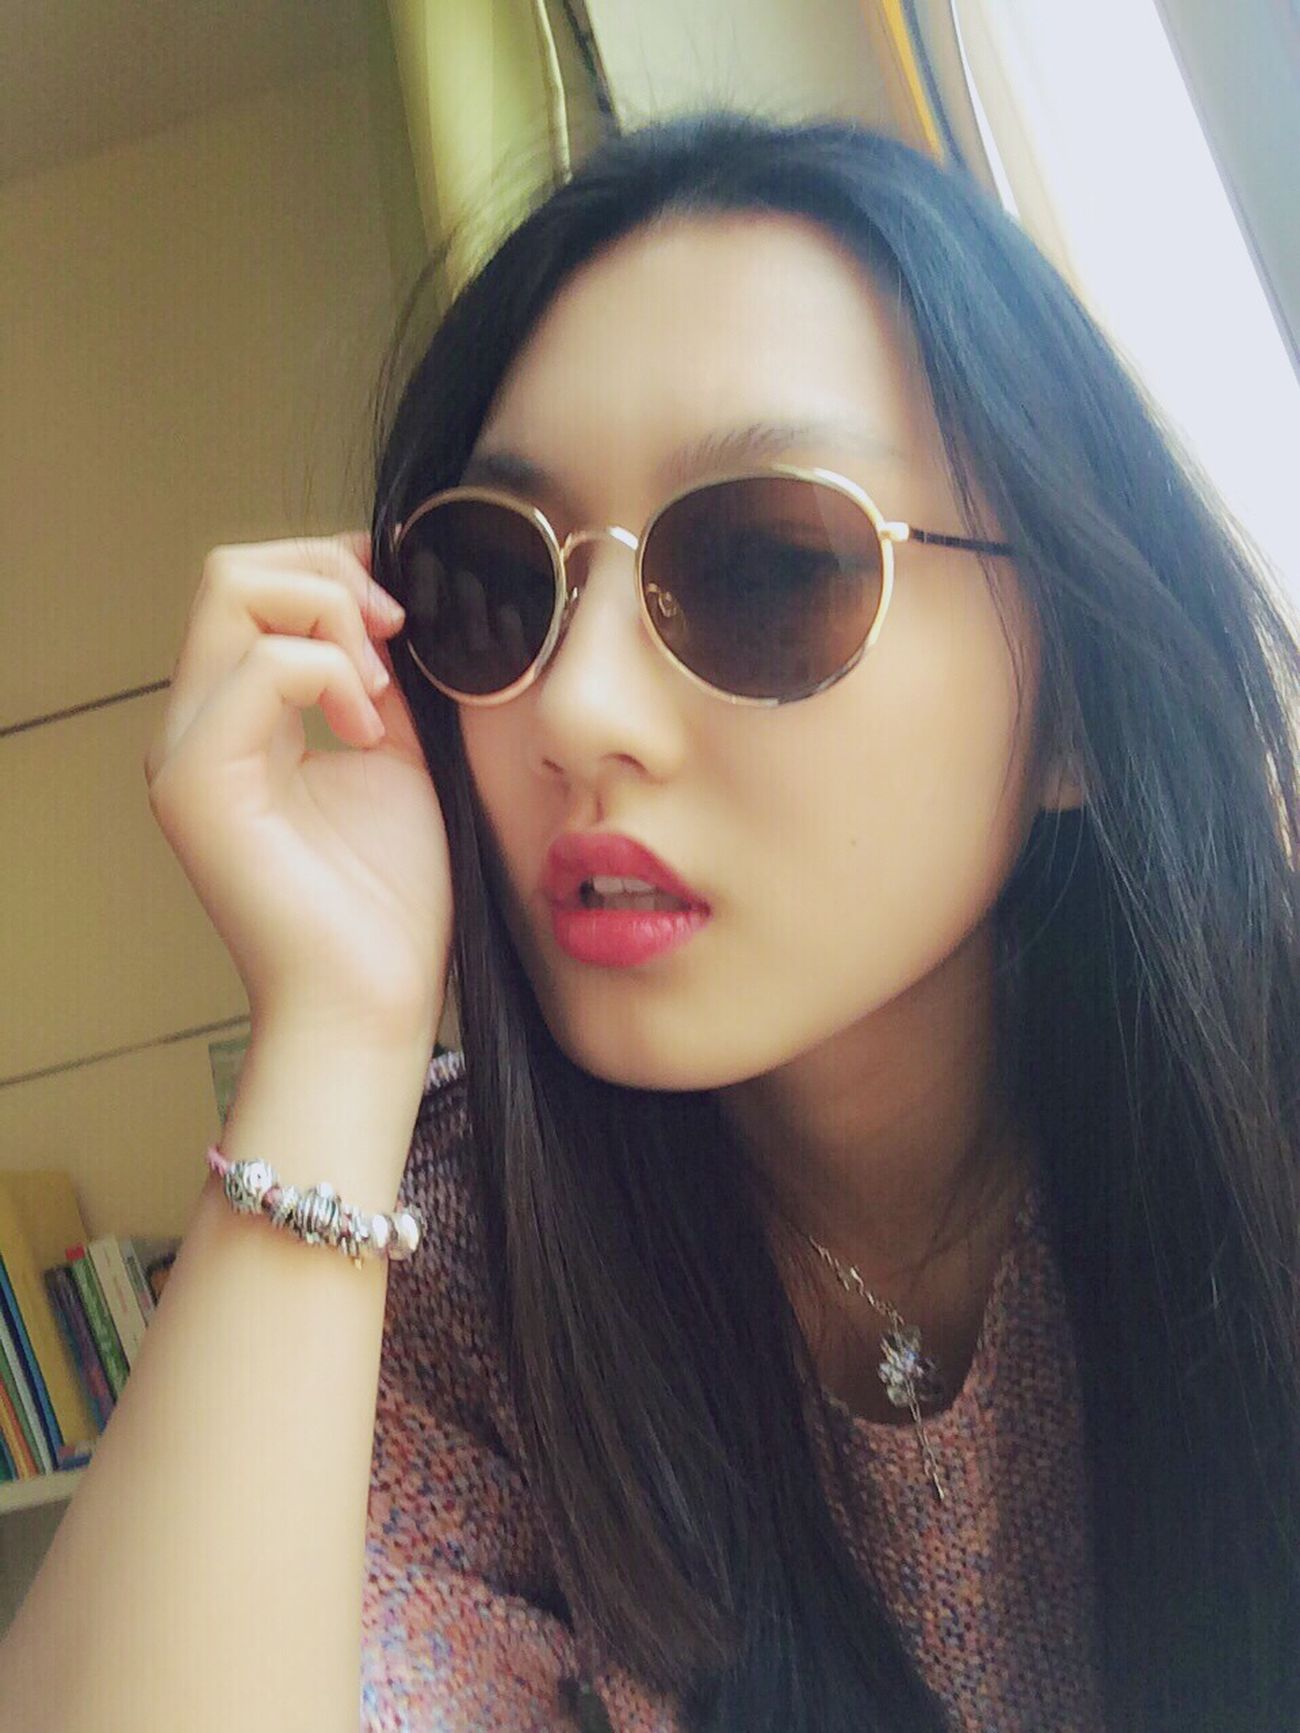 new sunglasses☀️ Taking Photos Selfie Check This Out